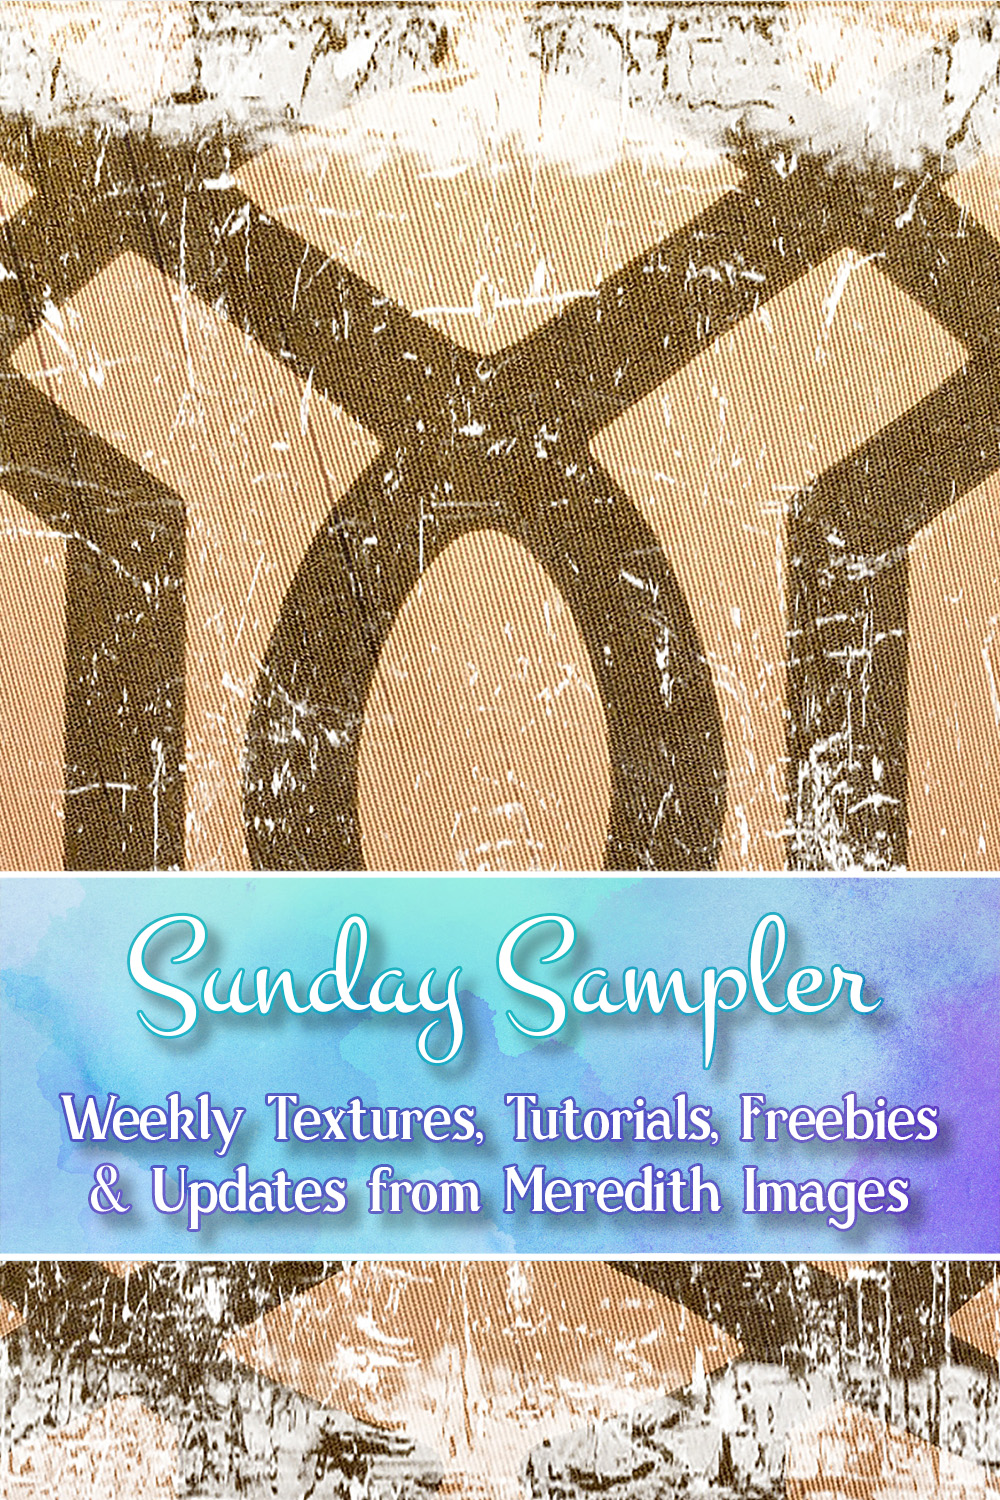 May 21 – Sunday Sampler (2 weeks combined!)